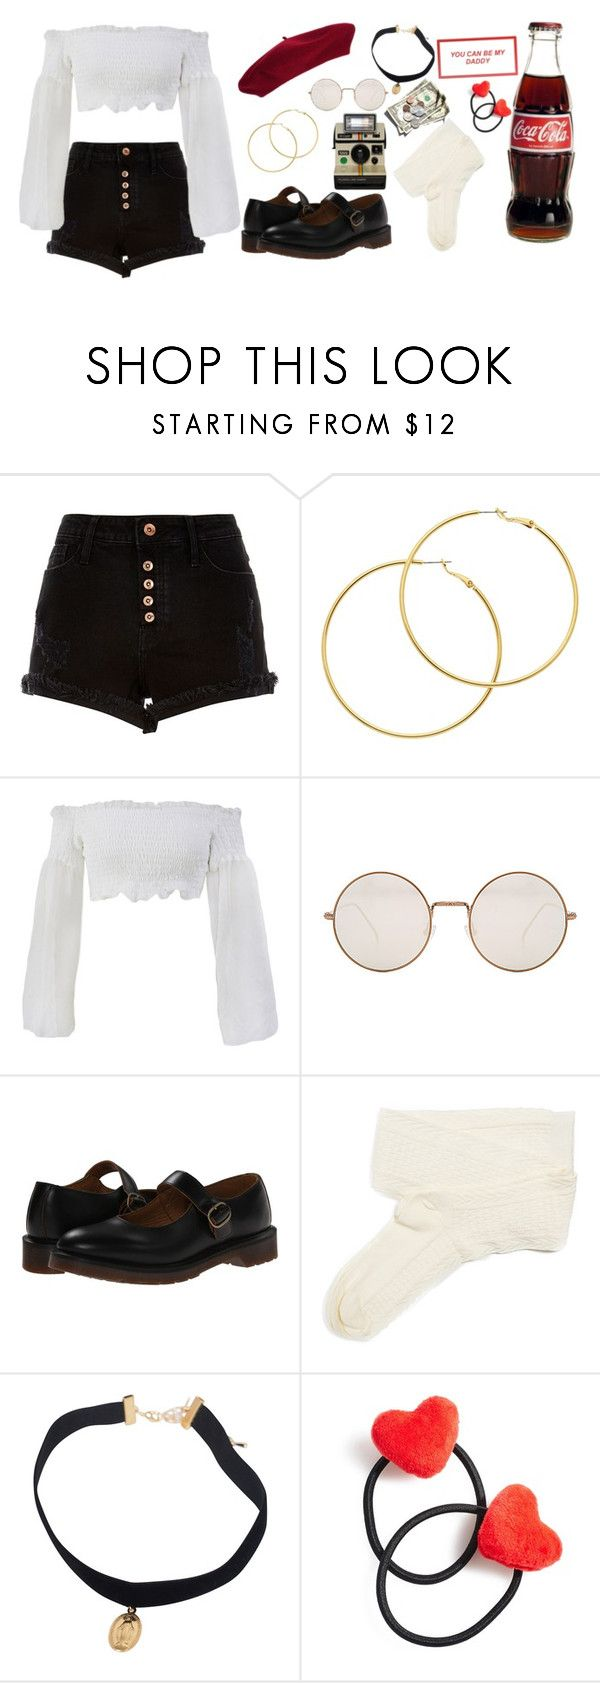 """nymphet"" by stilllaughingoutloud ❤ liked on Polyvore featuring River Island, Laulhere, Melissa Odabash, Illesteva, Dr. Martens, Fevrie and Ponytail Pals"